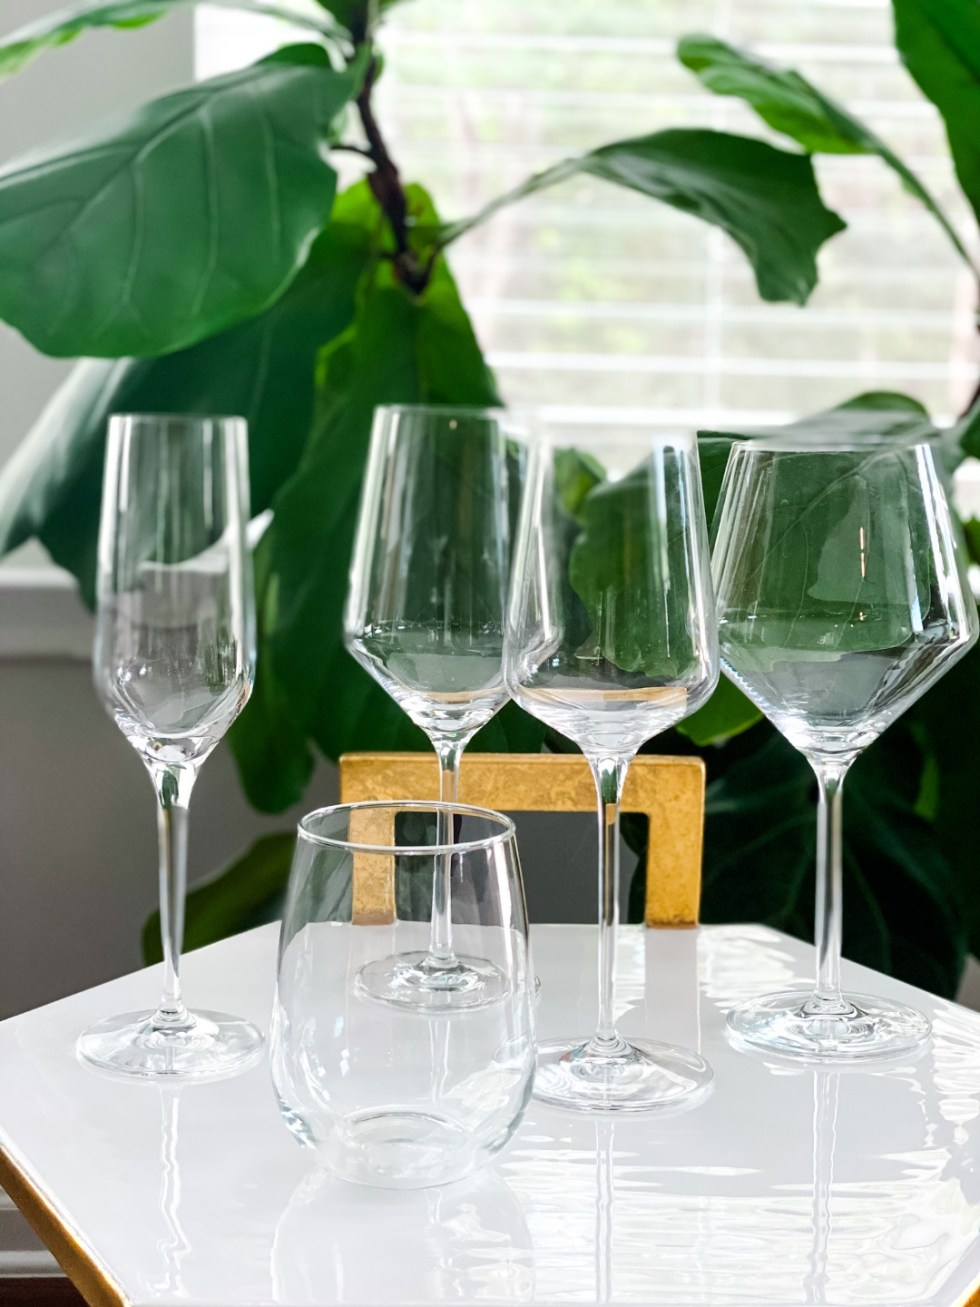 Top 5 Wine Glass Styles to Add to your Collection - I'm Fixin' To - @mbg0112 | Wine Glass Styles by popular N.C. life and style blog, I'm Fixin' To: image of 5 different wine glasses.